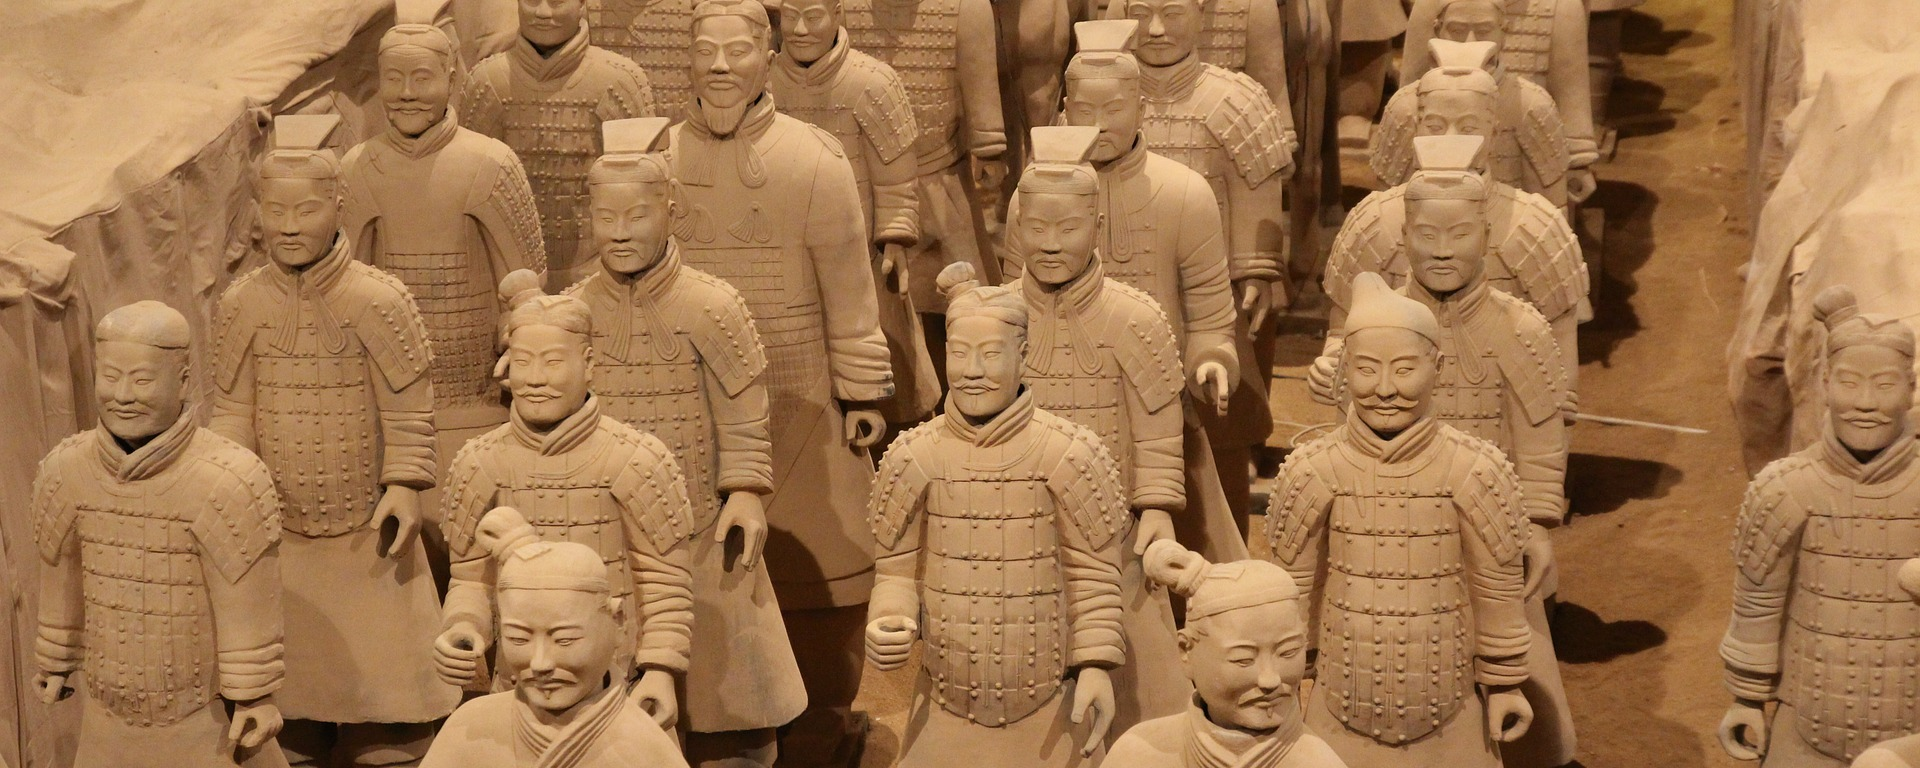 terracotta army-Image by artemtation from Pixabay